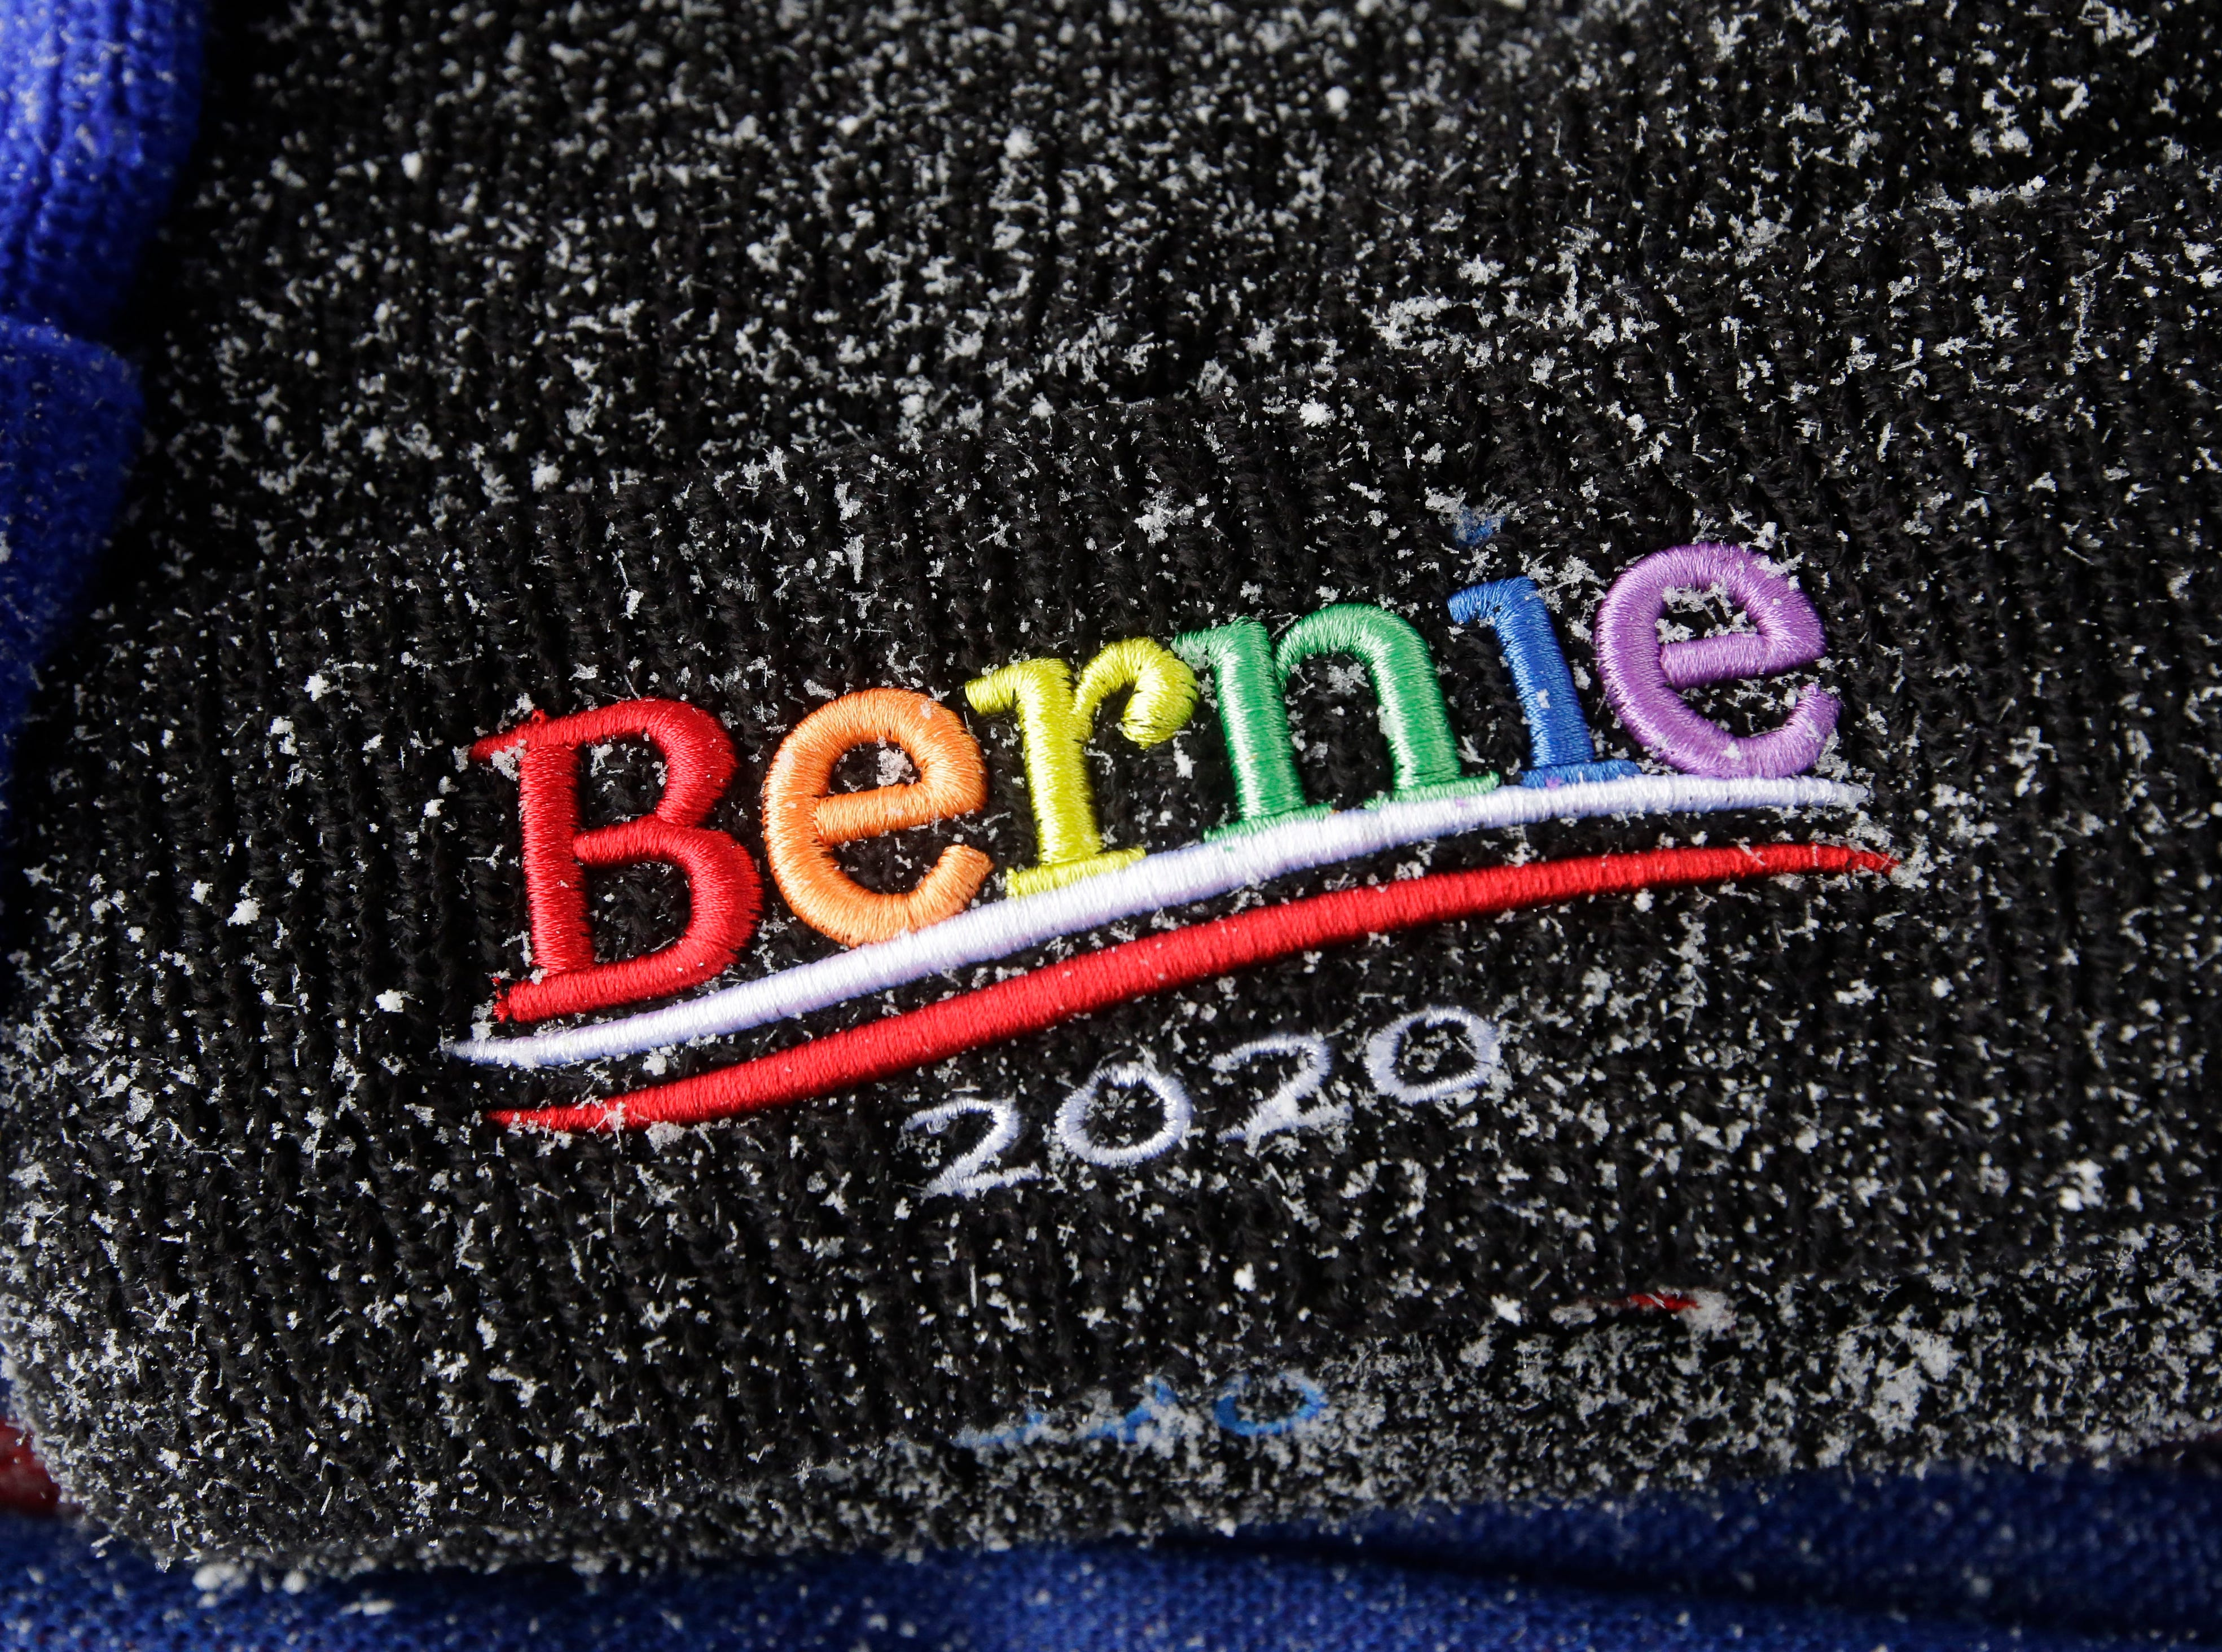 A hat featuring a campaign logo is dusted with snow in a vendor's stall outside the location of a scheduled campaign stop for 2020 Democratic presidential candidate Sen. Bernie Sanders, Sunday, March 10, 2019, in Concord, N.H.